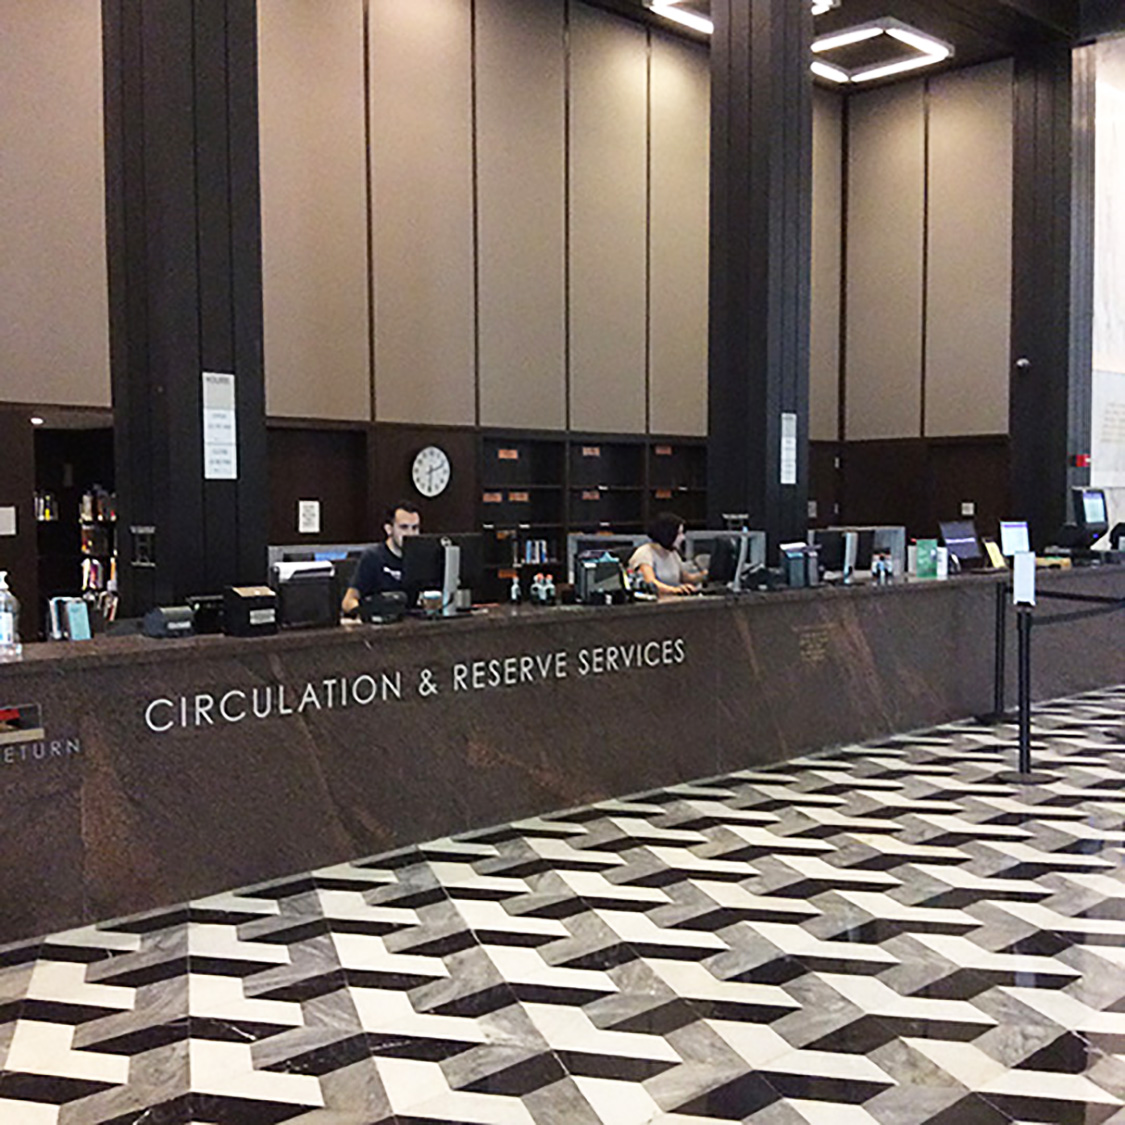 Circulation & Reserve Services